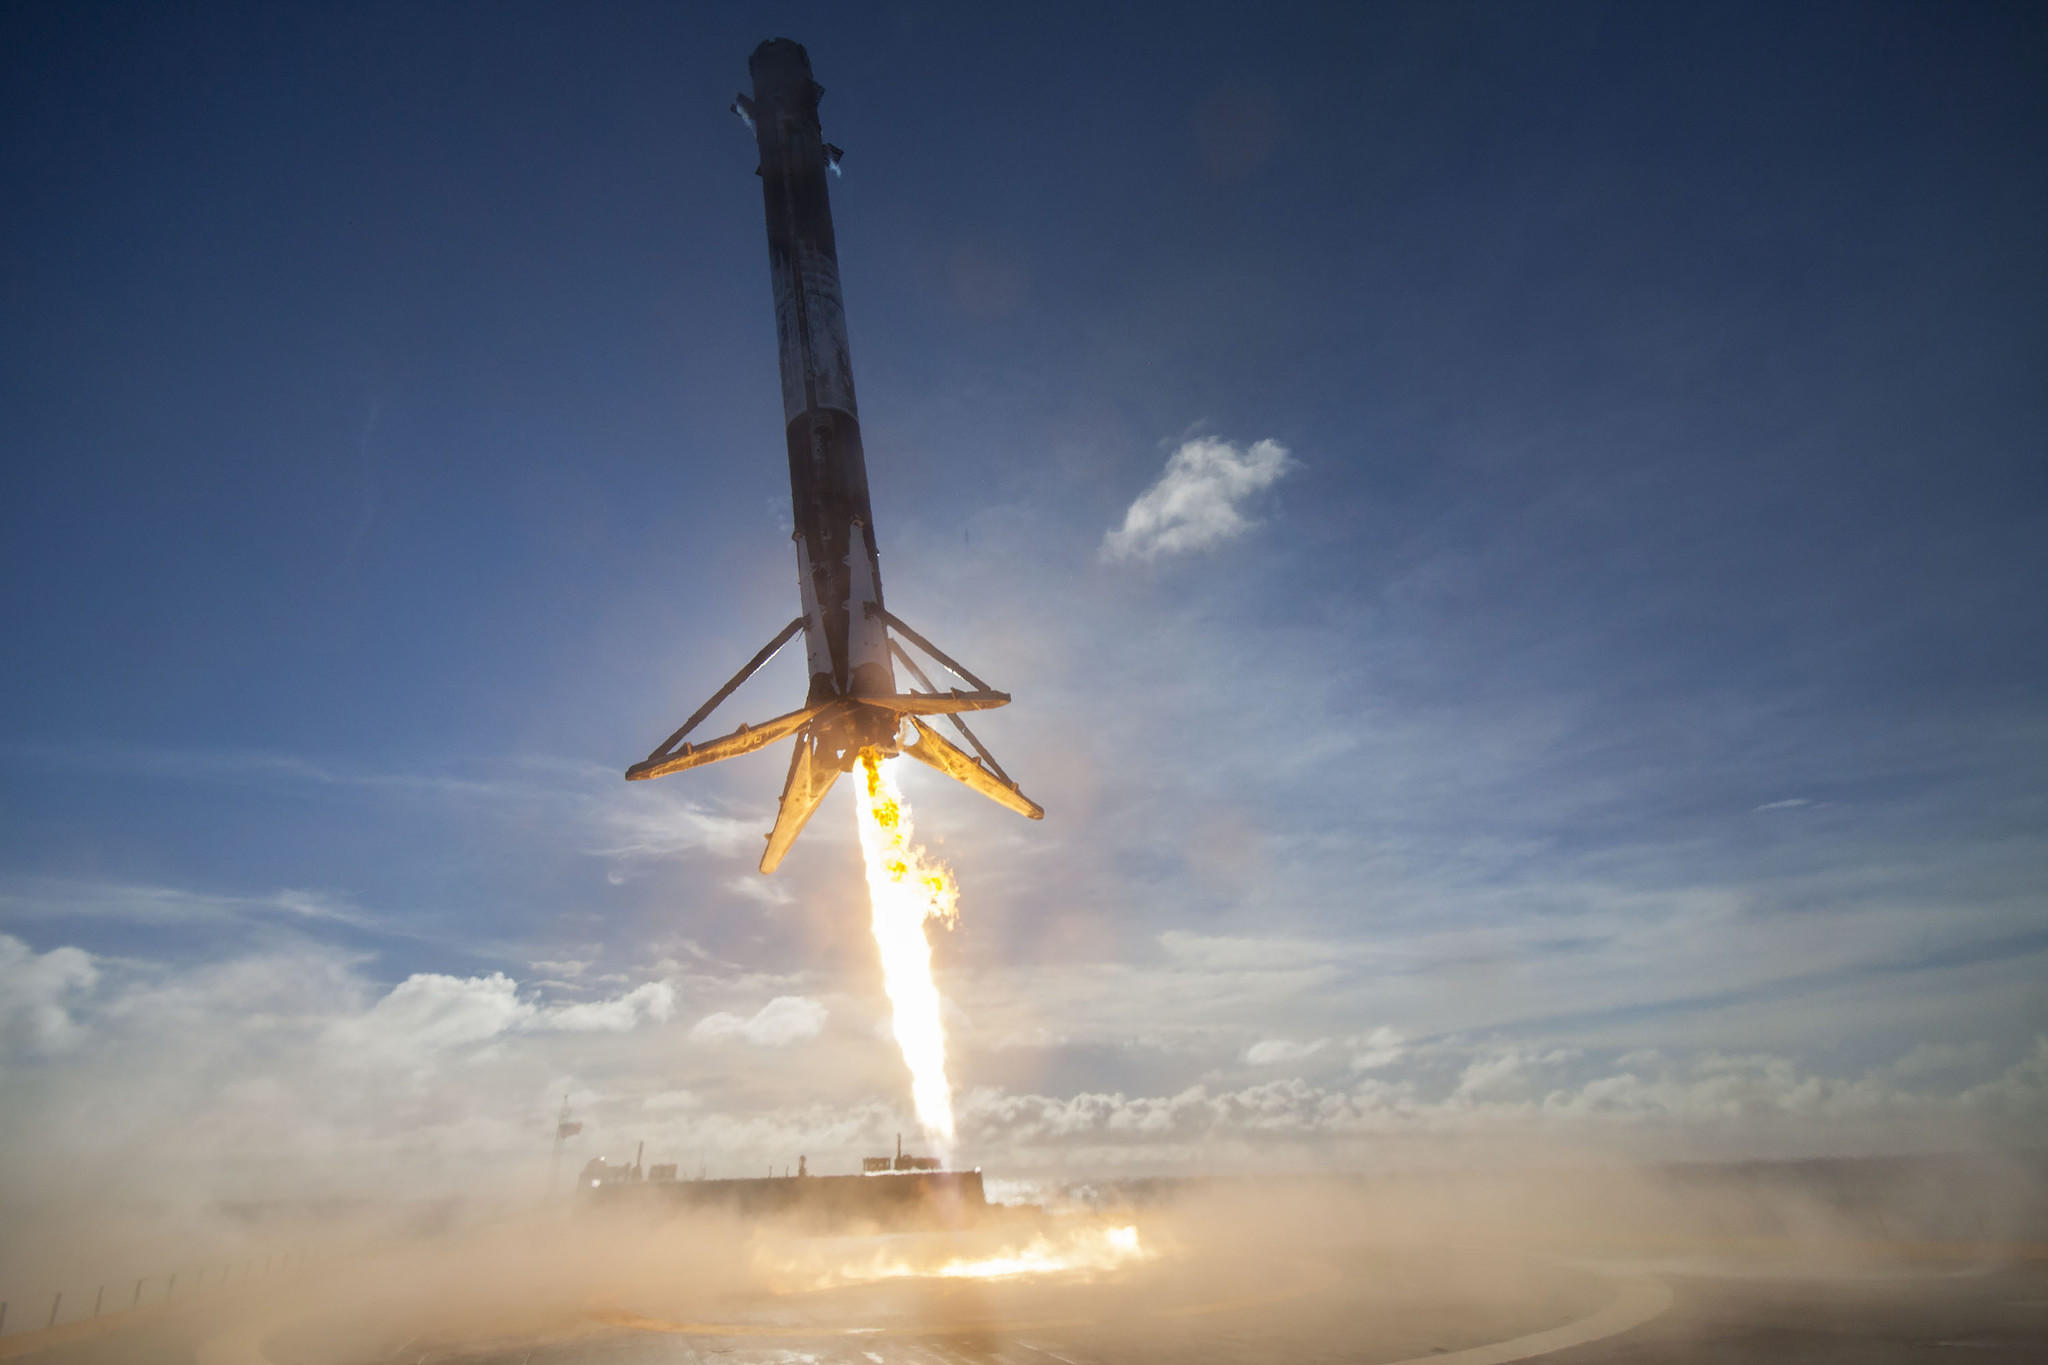 SpaceX's Falcon 9 touches down on a droneship in the Atlantic Ocean.